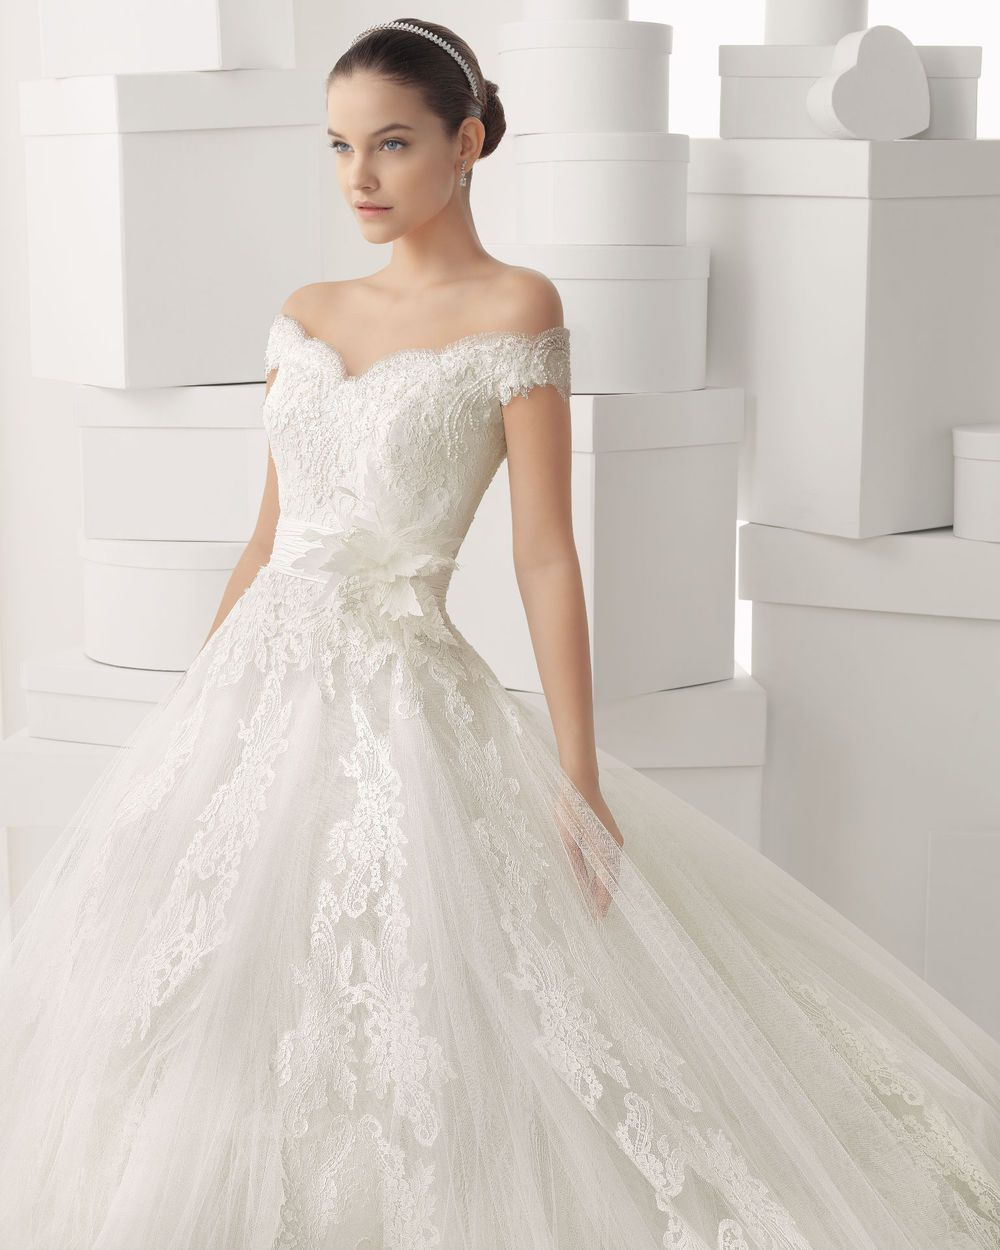 Buy 2014 glamorous off the shoulder ball gown lace wedding for Off the shoulder ball gown wedding dress